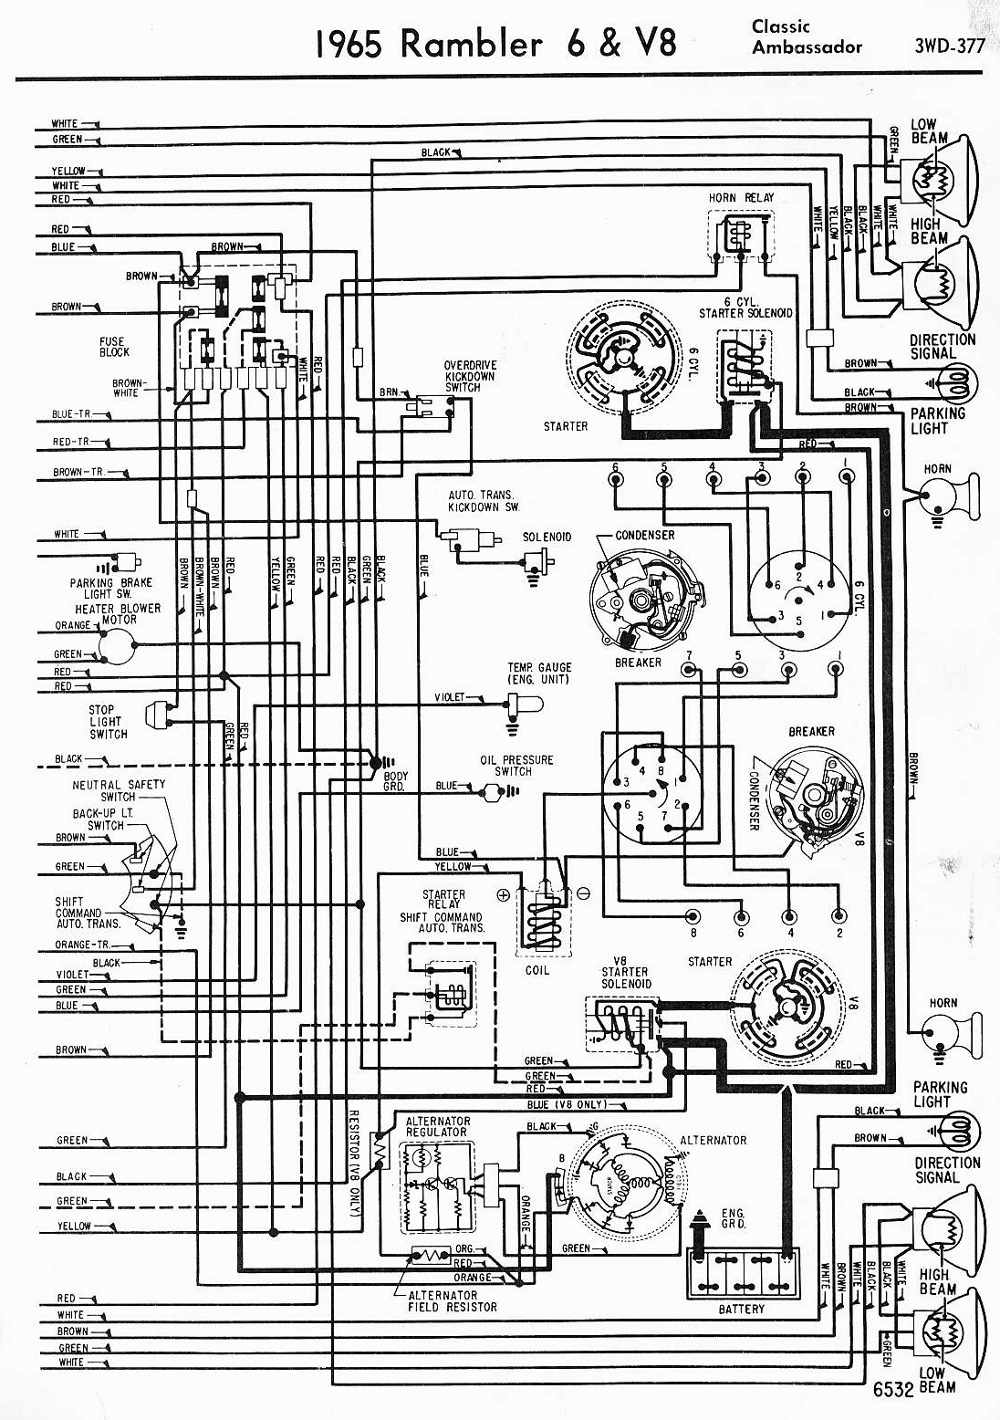 wiring diagrams of 1965 AMC rambler 6 and v8 classic and ambassador part 2?td1484904655 ford transit wiring diagram download efcaviation com AMC Ambassador at creativeand.co